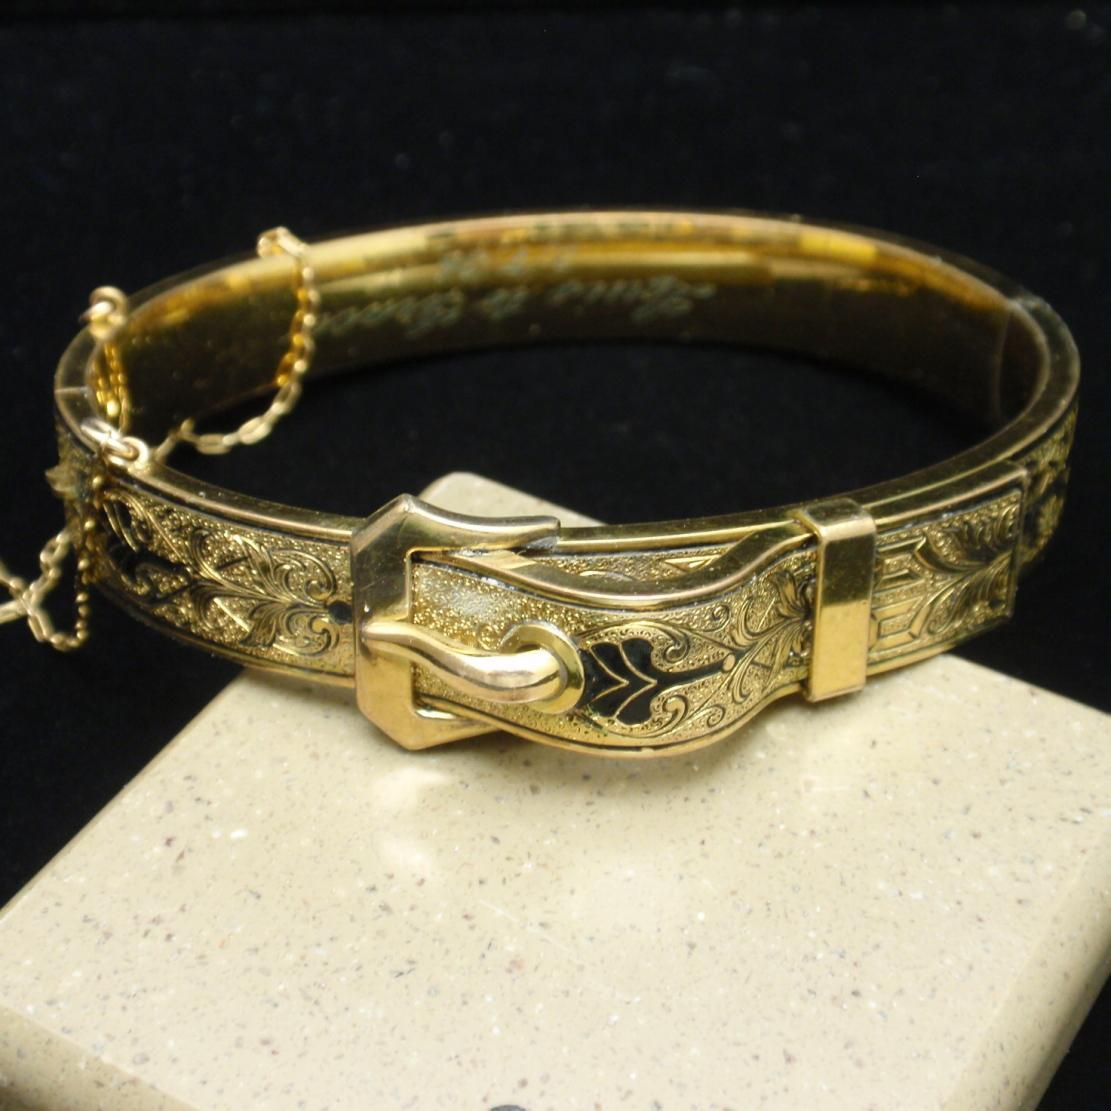 Taille d'Epargne Hinged Buckle Bangle Bracelet with Personal Engraving on Inside